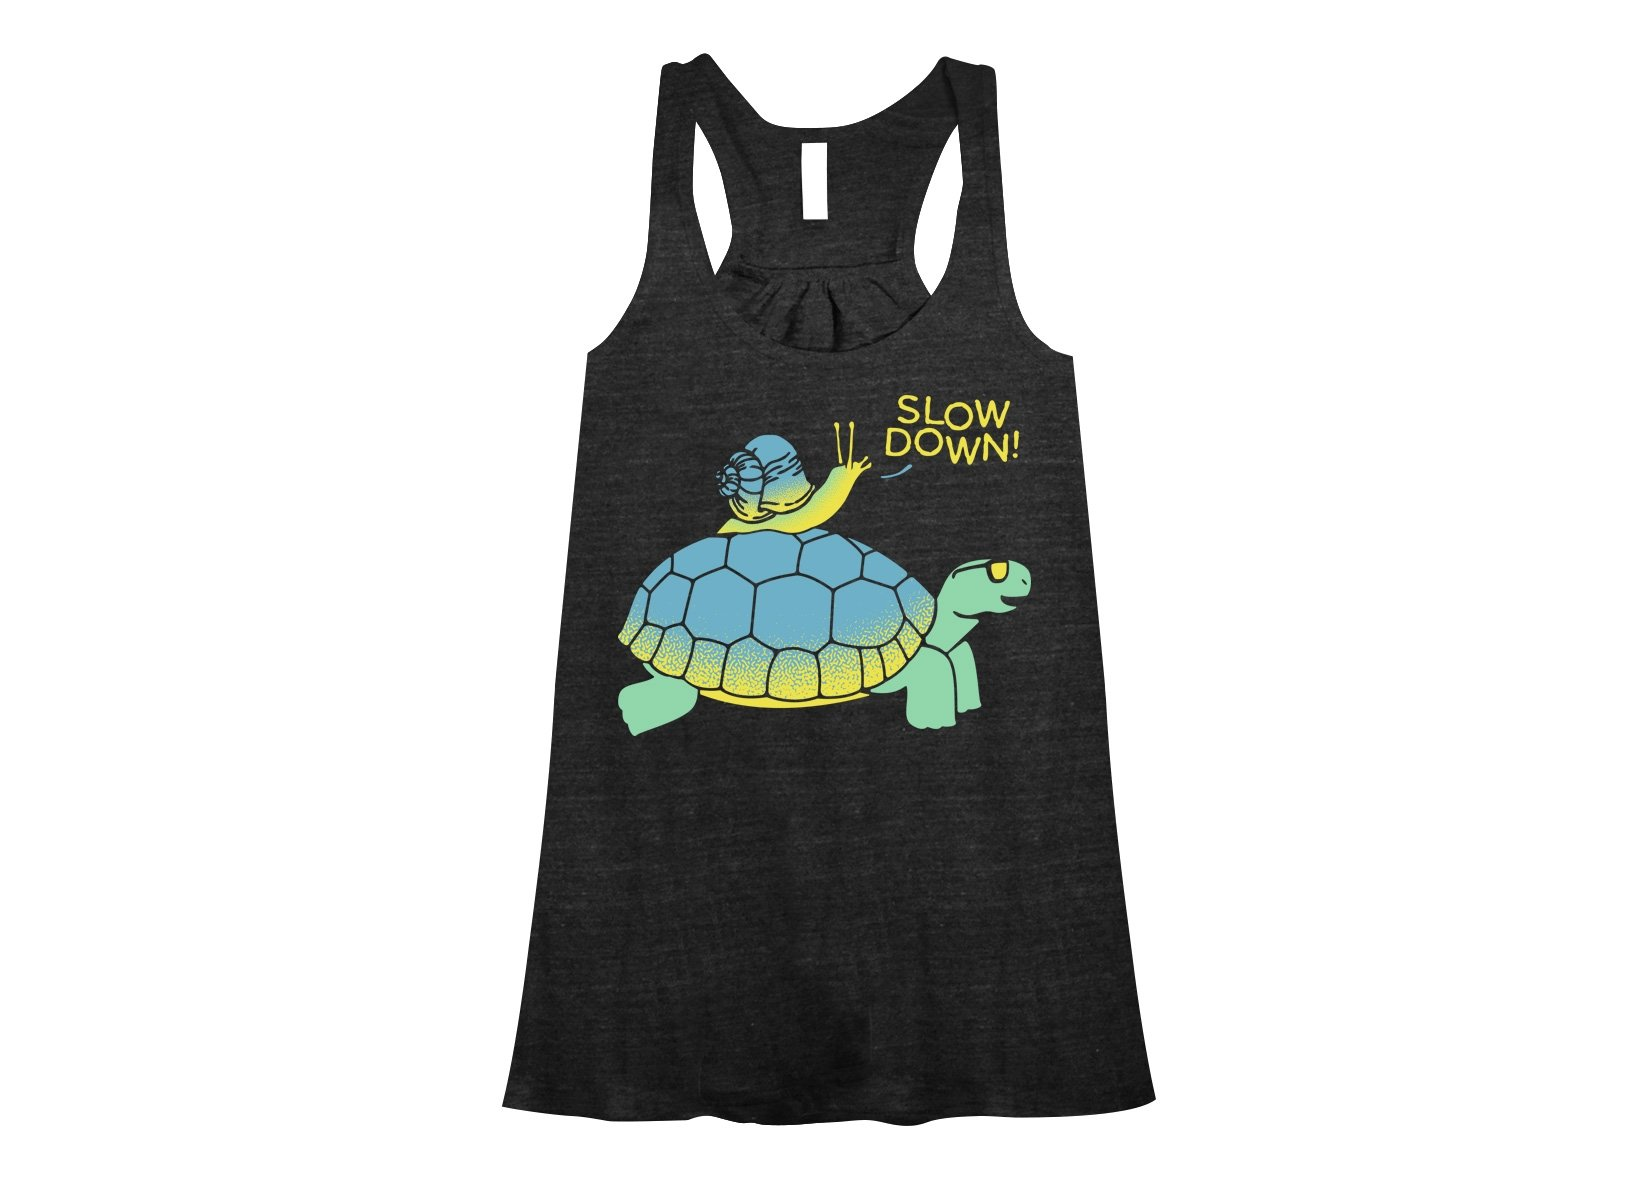 Slow Down! on Womens Tanks T-Shirt